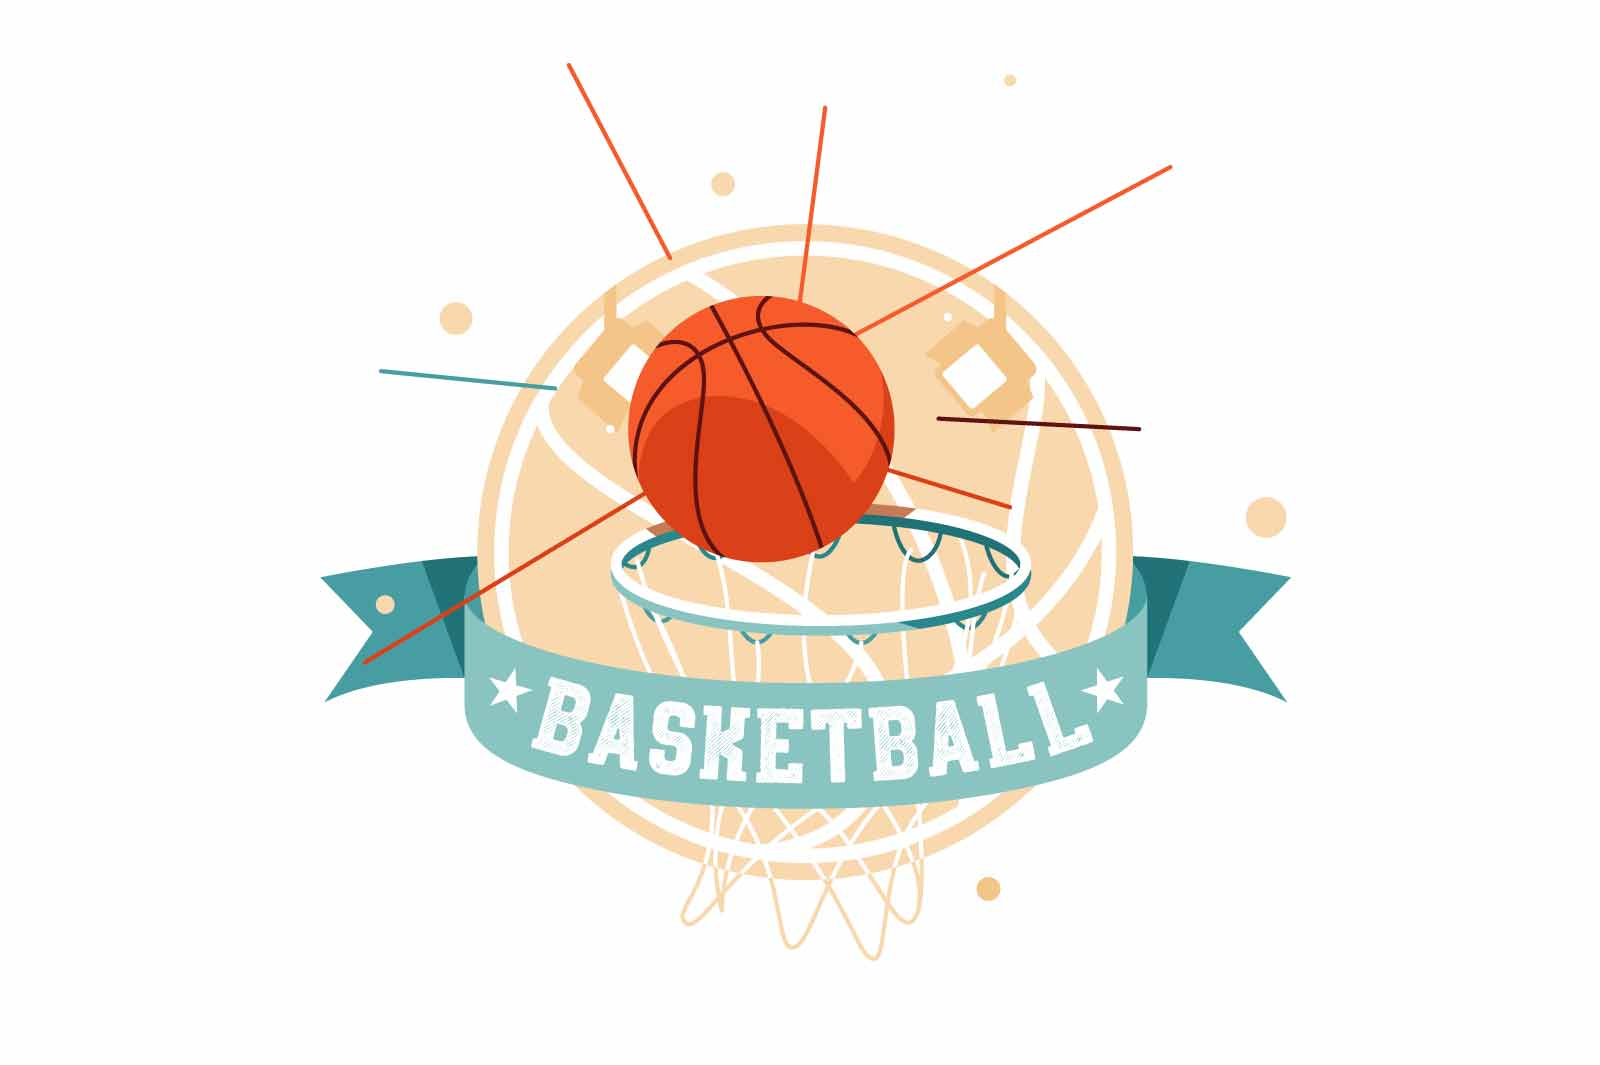 Flat icon of basketball scores goal with ball and inscription. Isolated symbol concept of sport playing in game performs achievement in competition. Vector illustration.